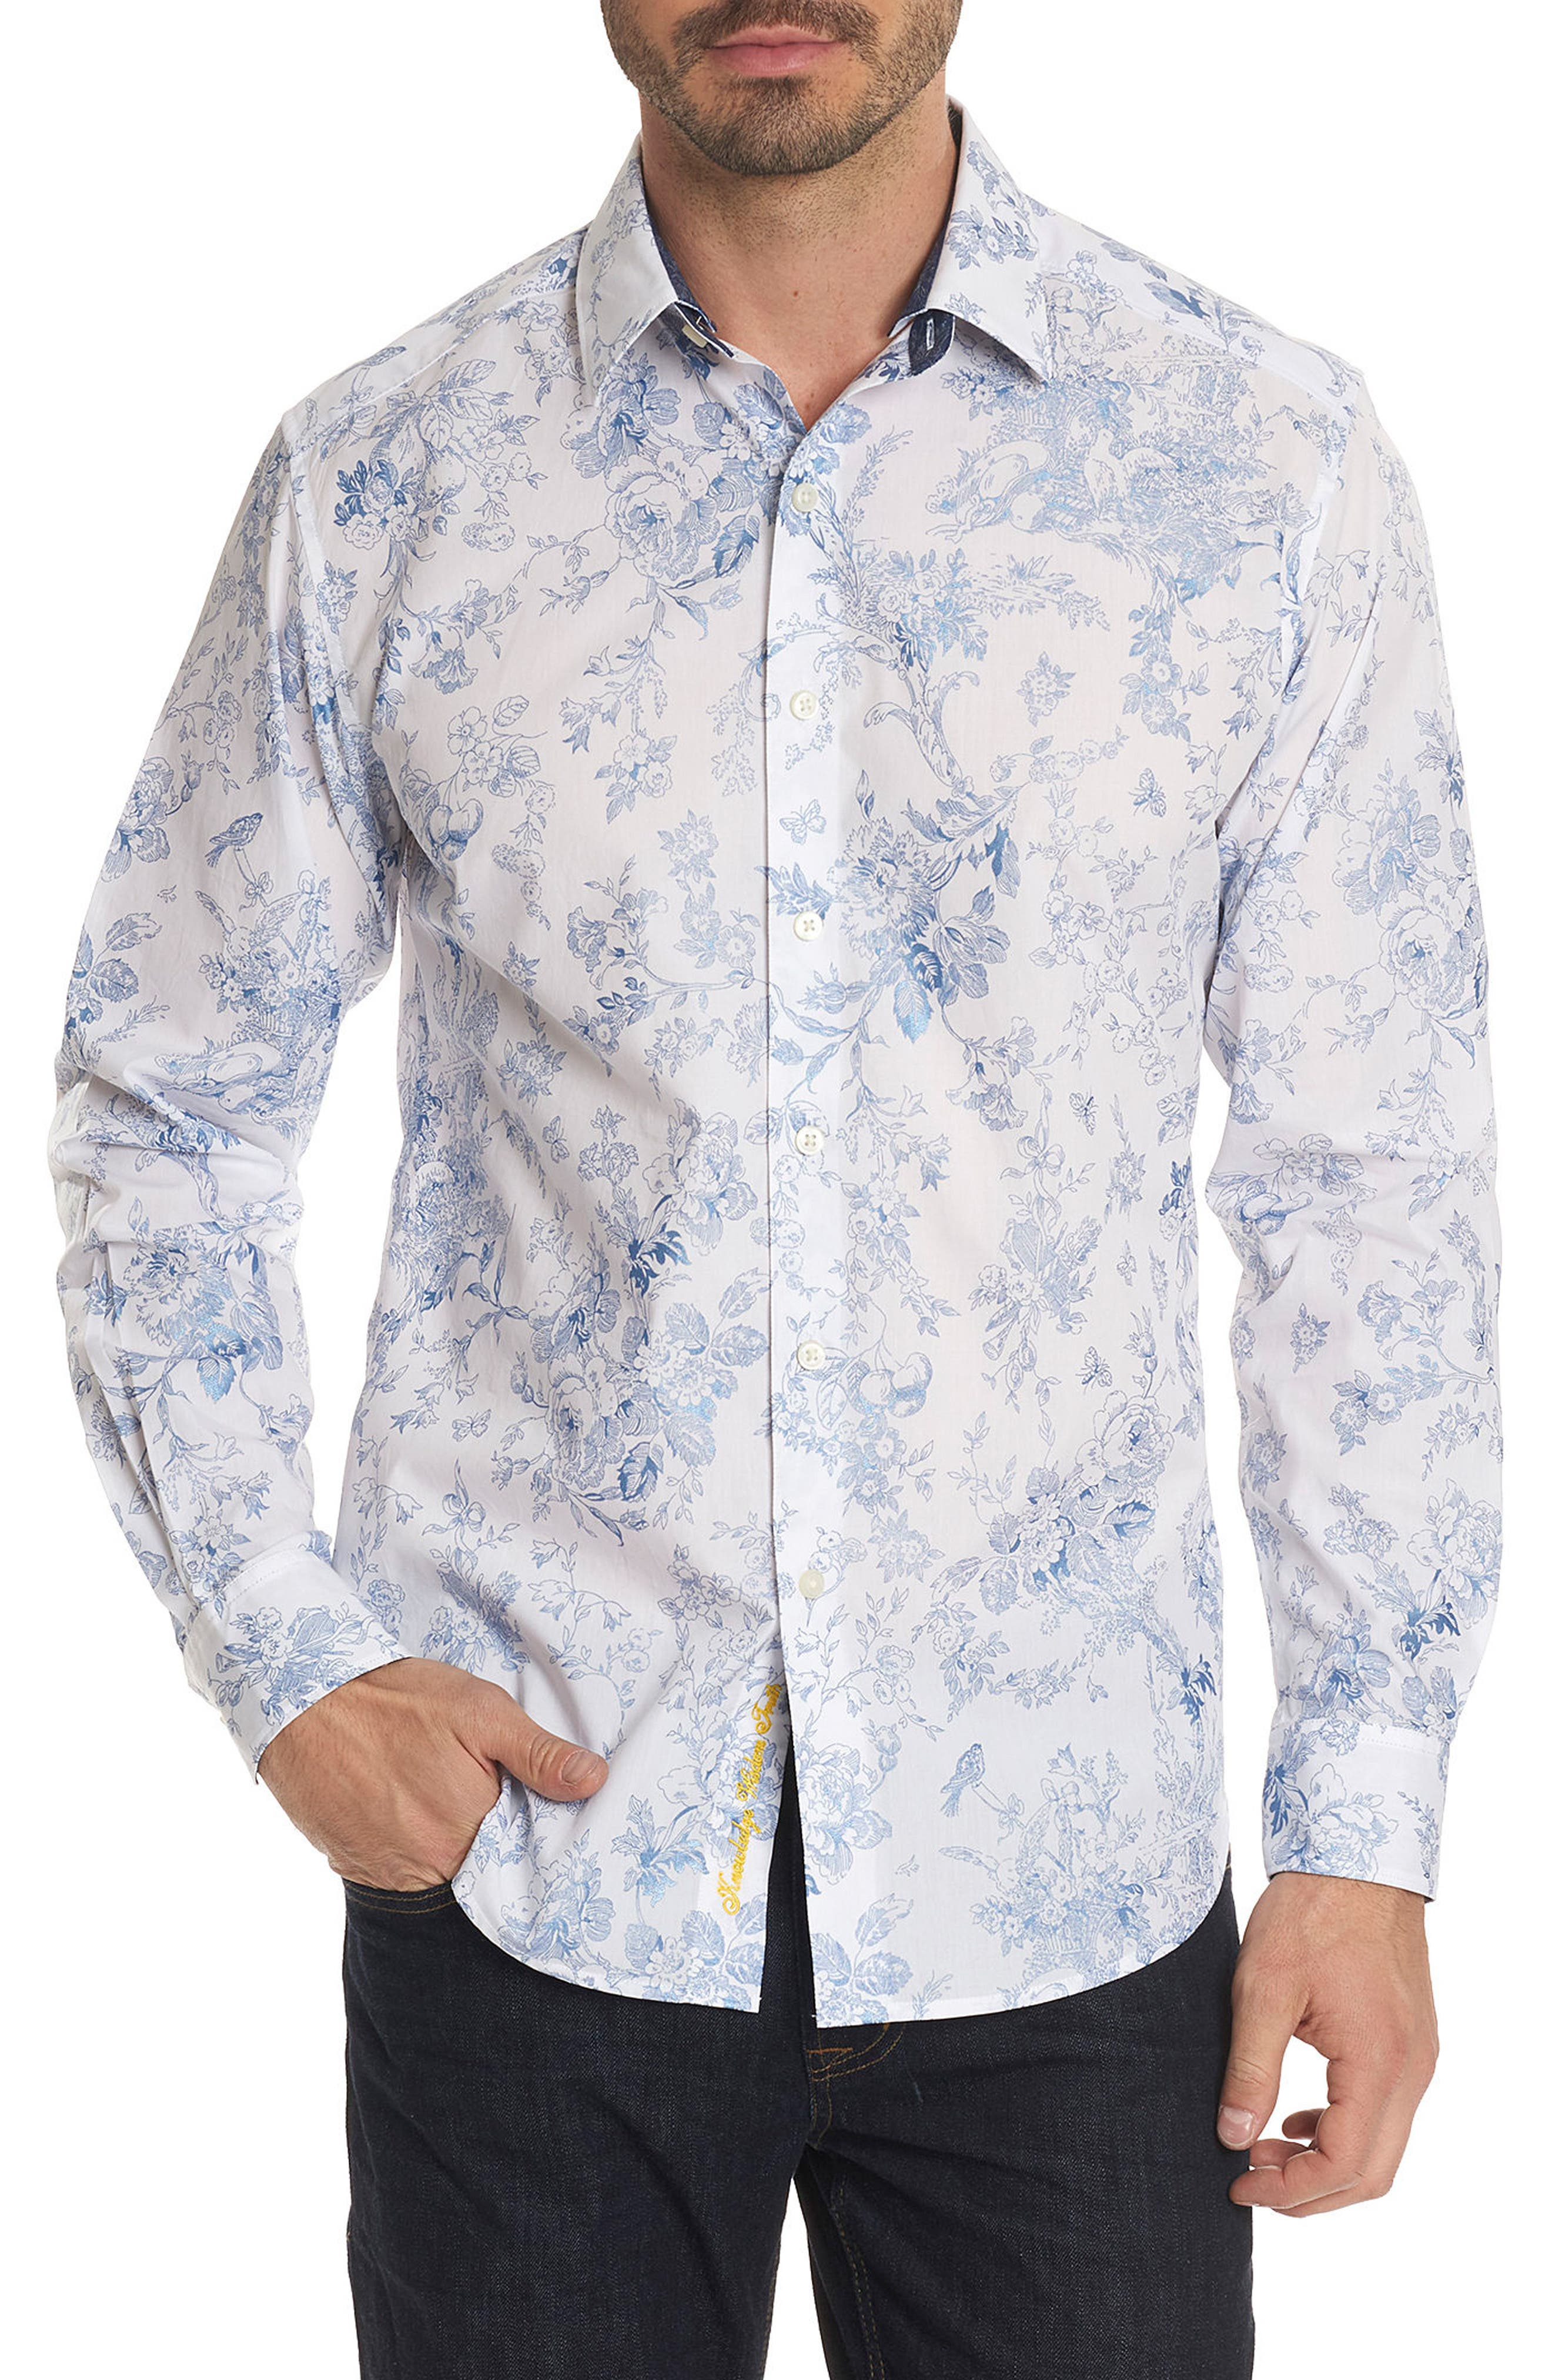 Rider Classic Fit Sport Shirt,                         Main,                         color, 100